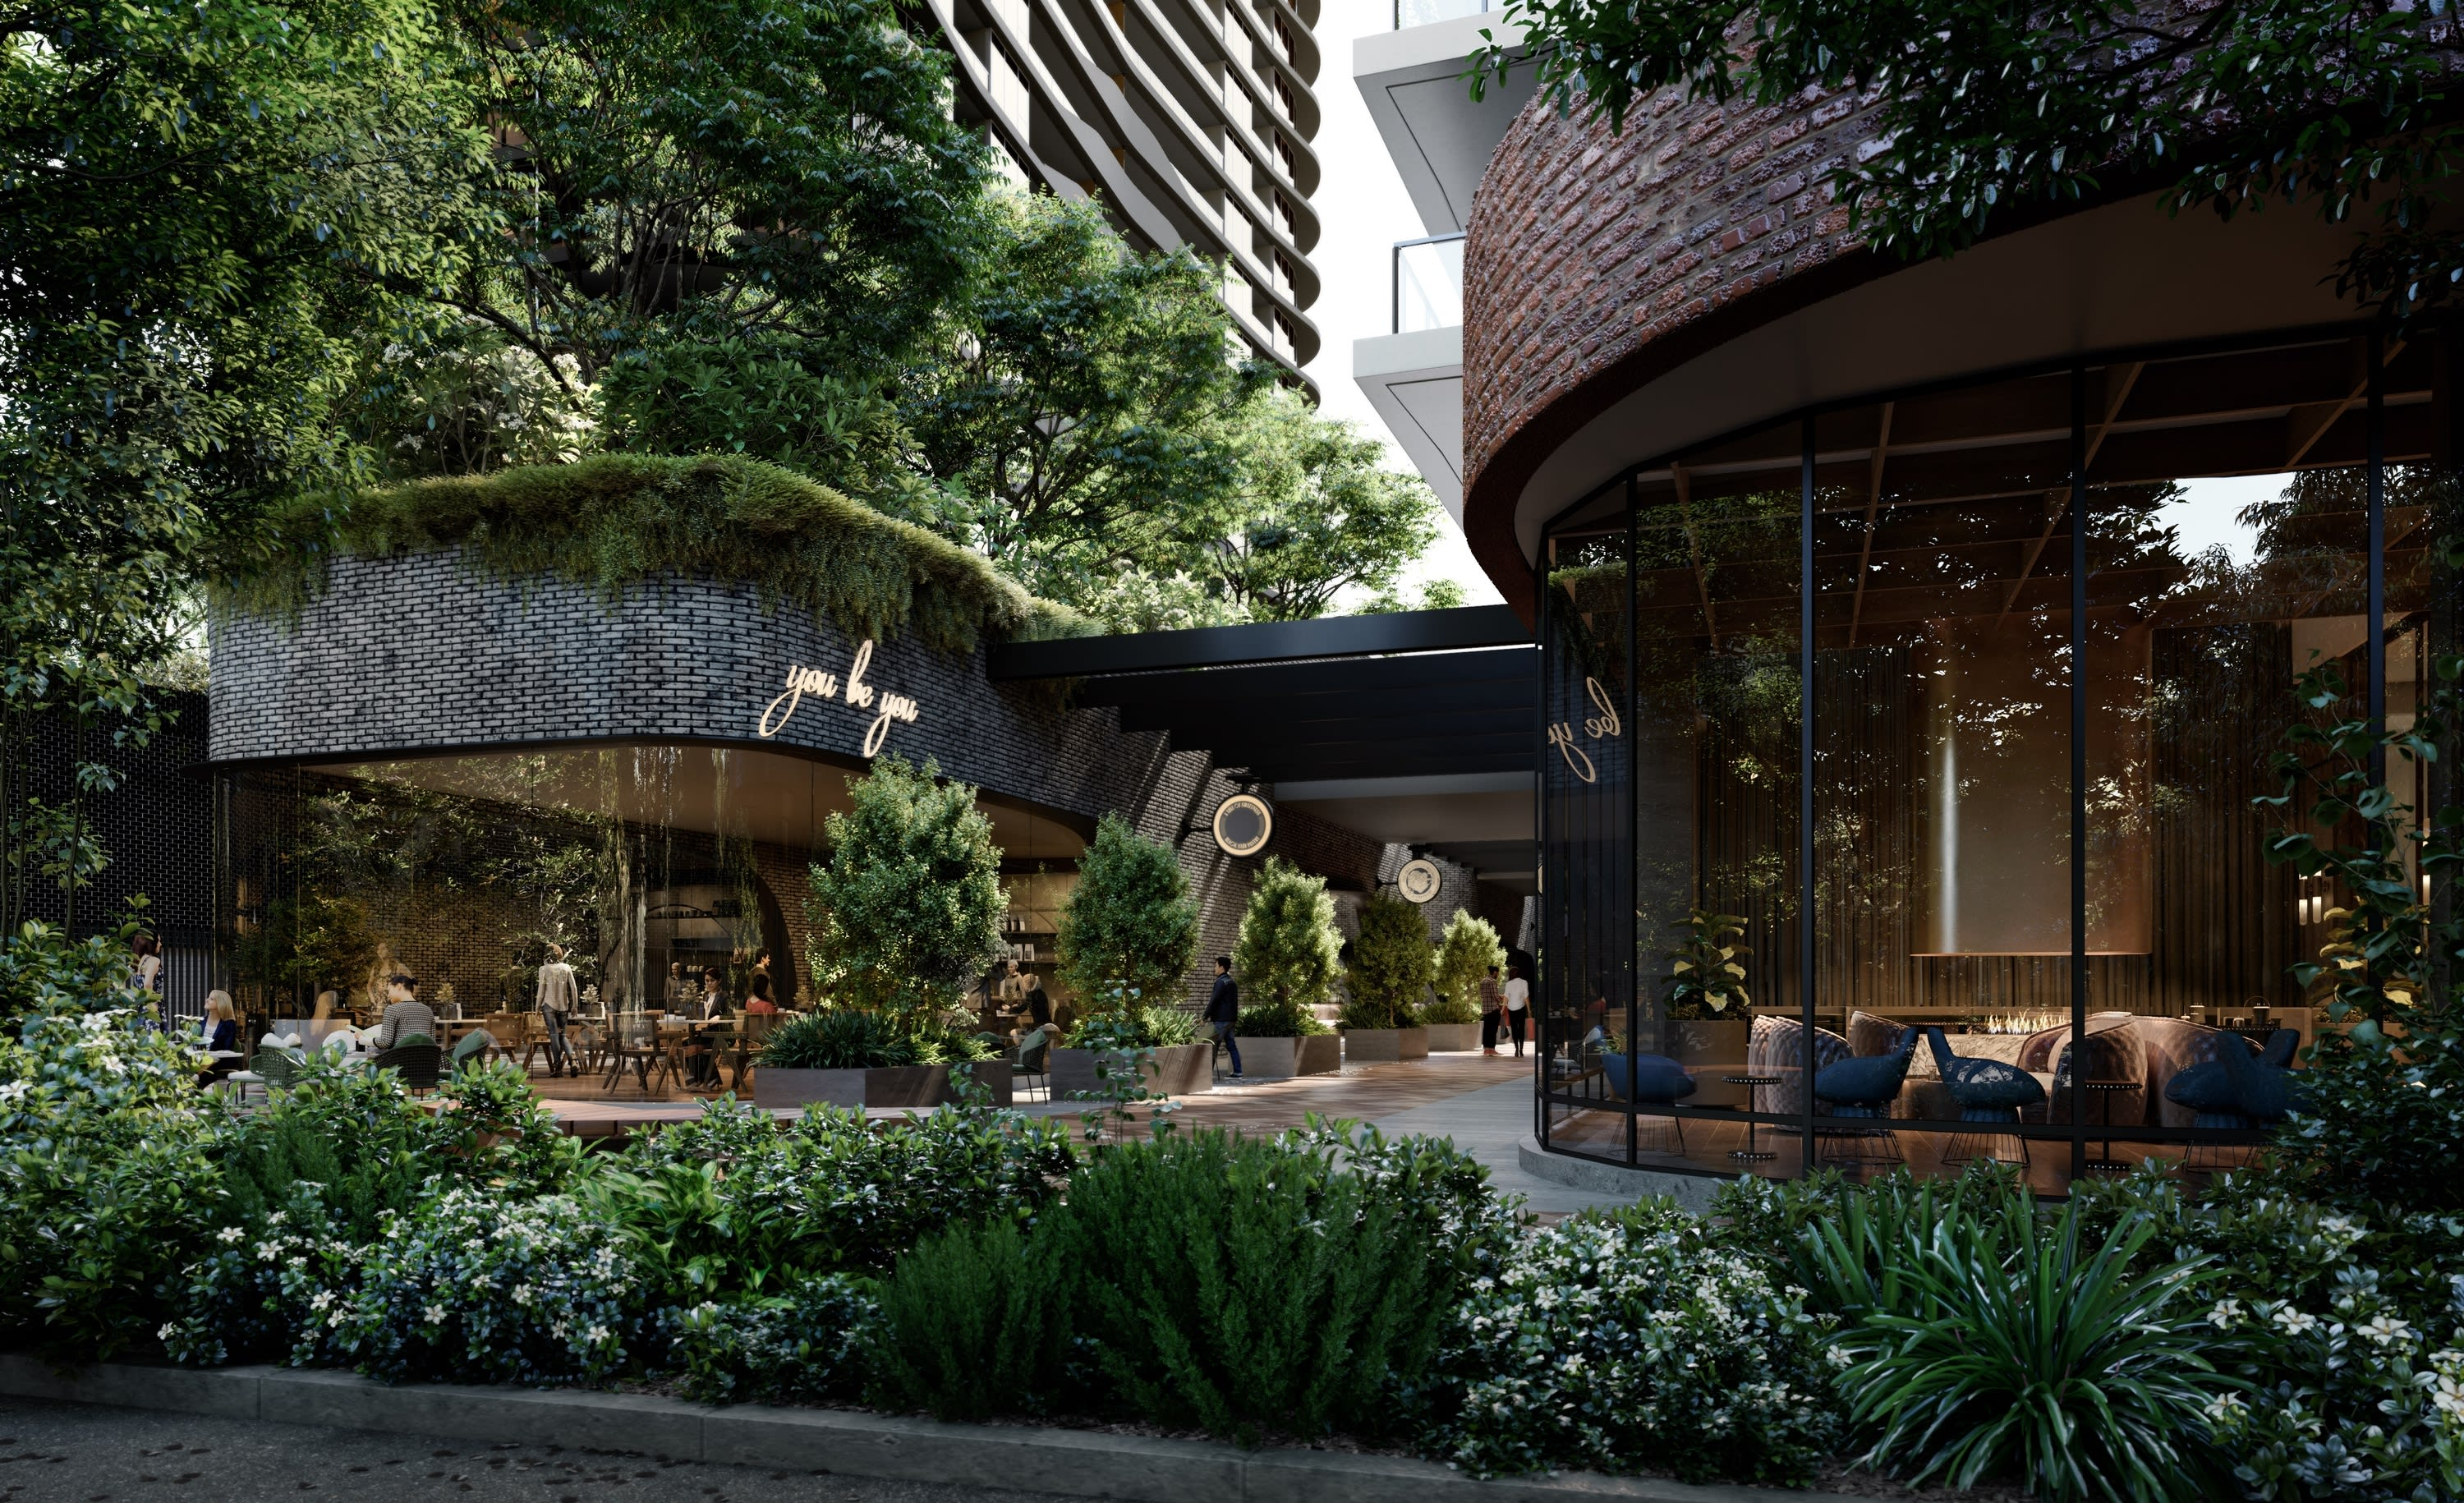 Amenity highlights: What's within walking distance of Beyond Hurstville?